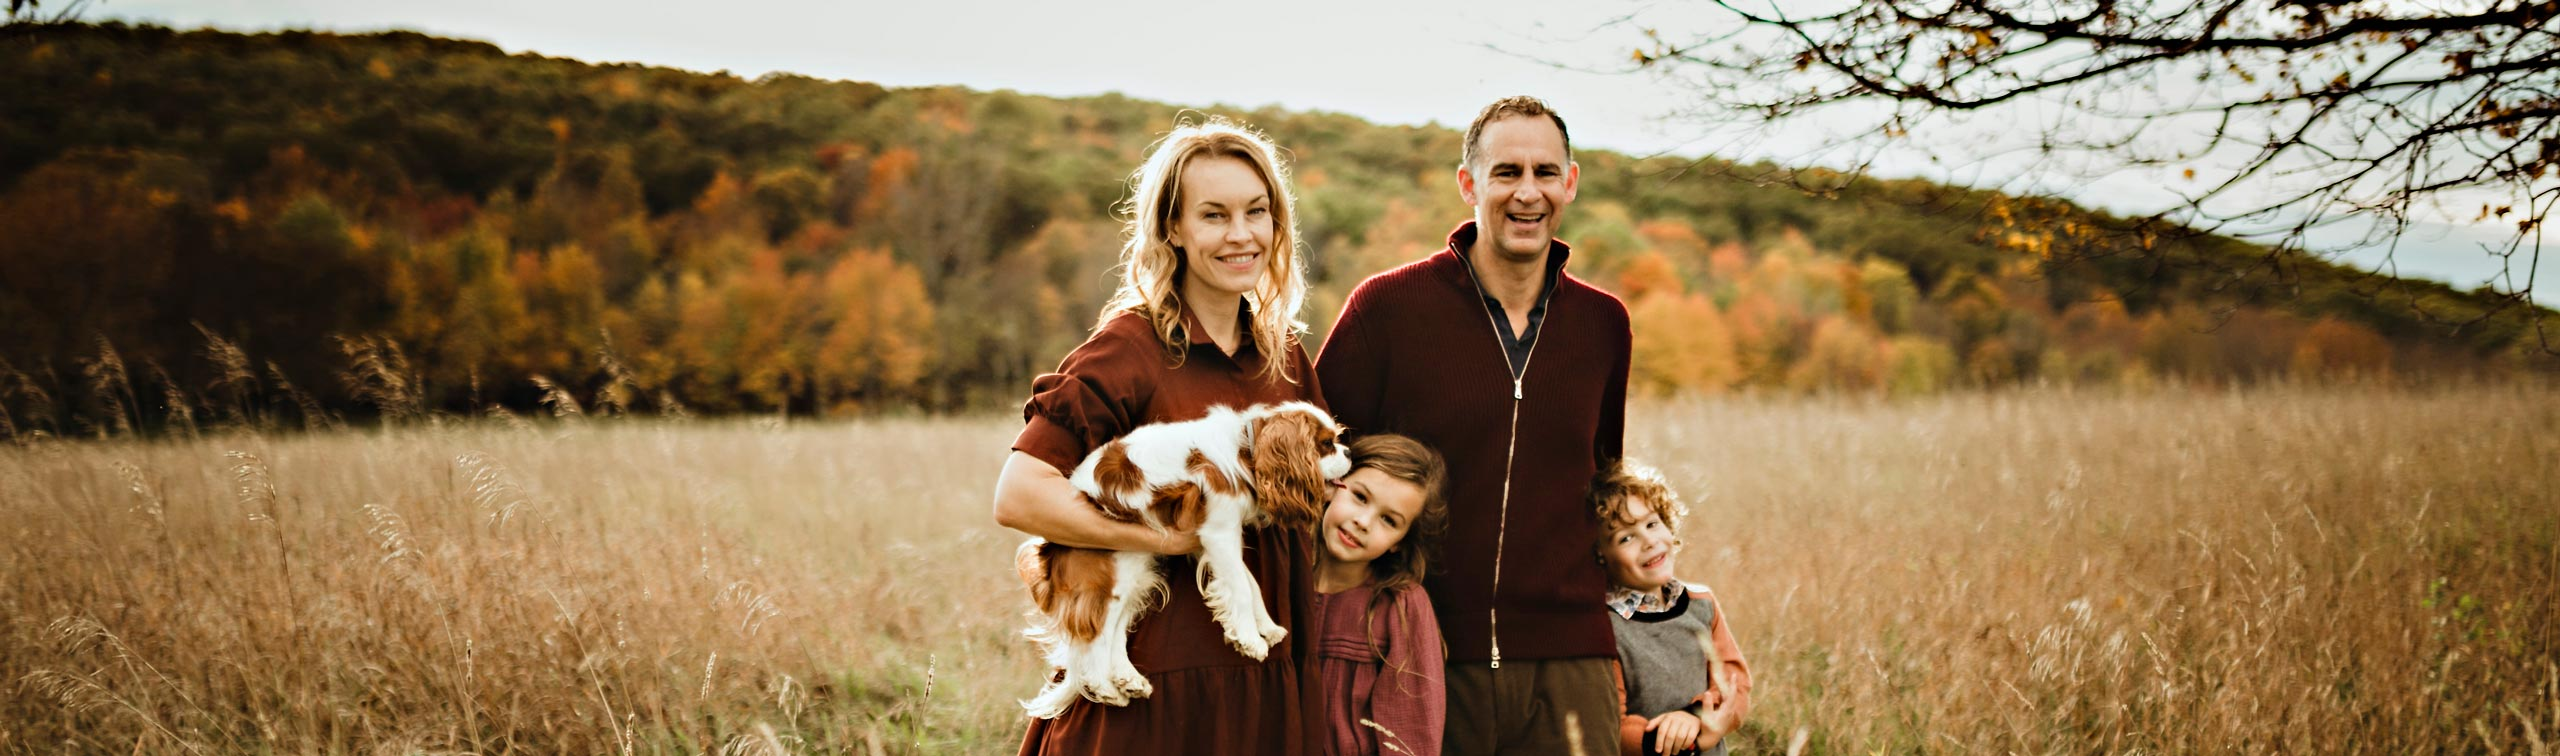 family standing with dog standing in a field